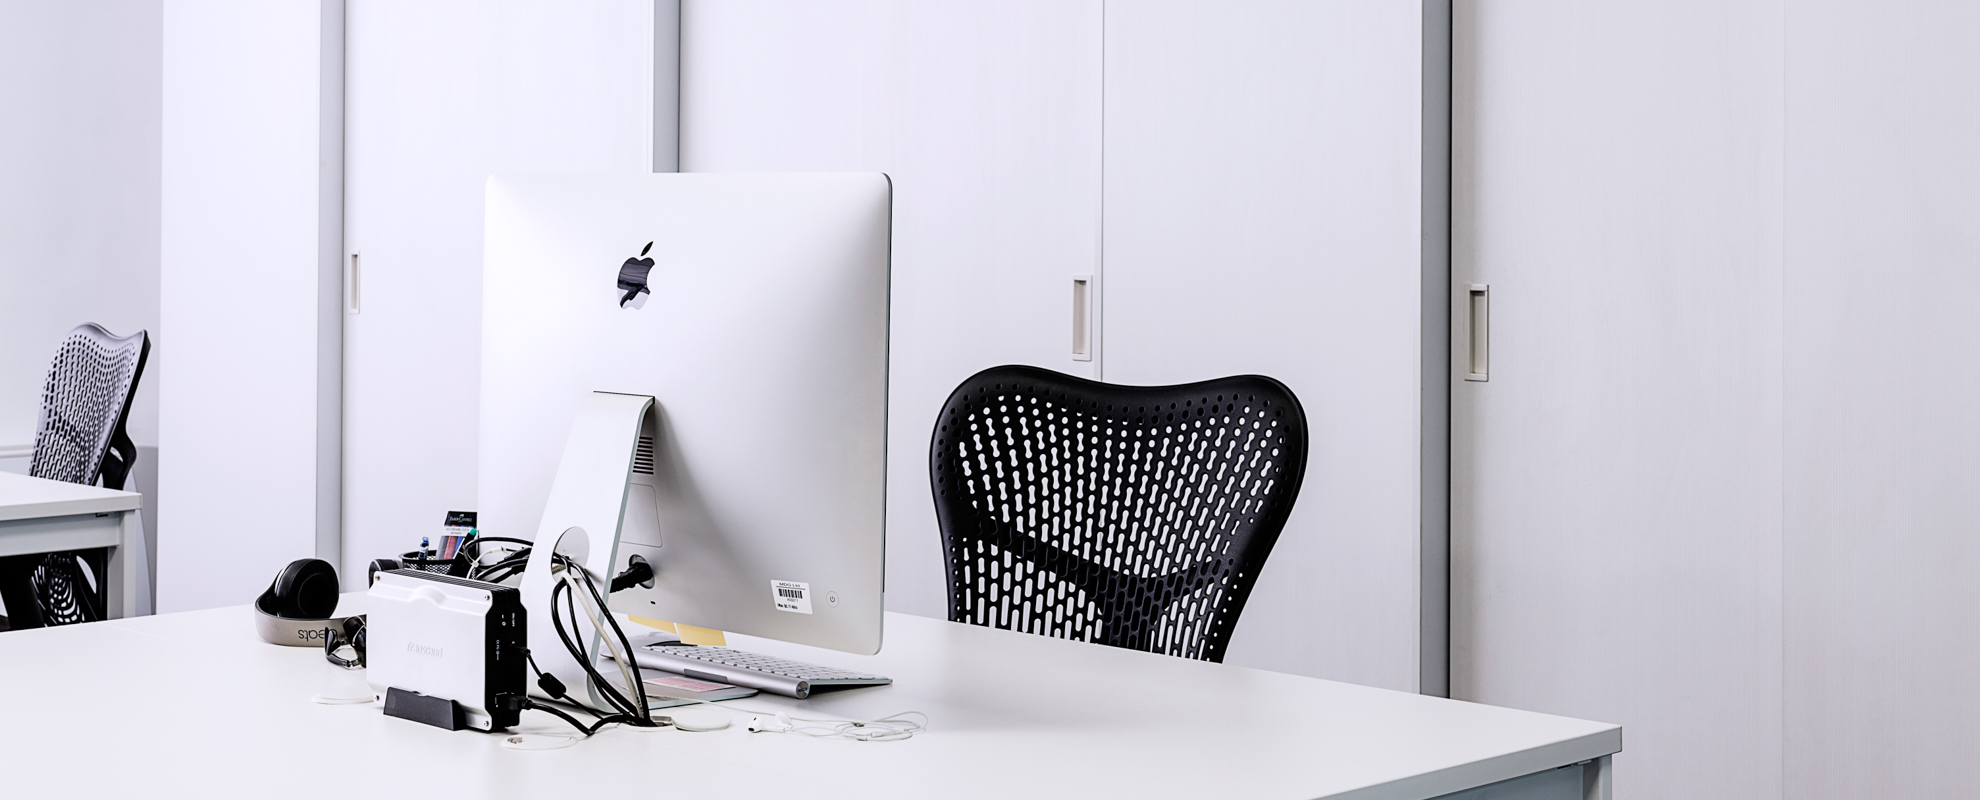 Working Table With Branded iMac